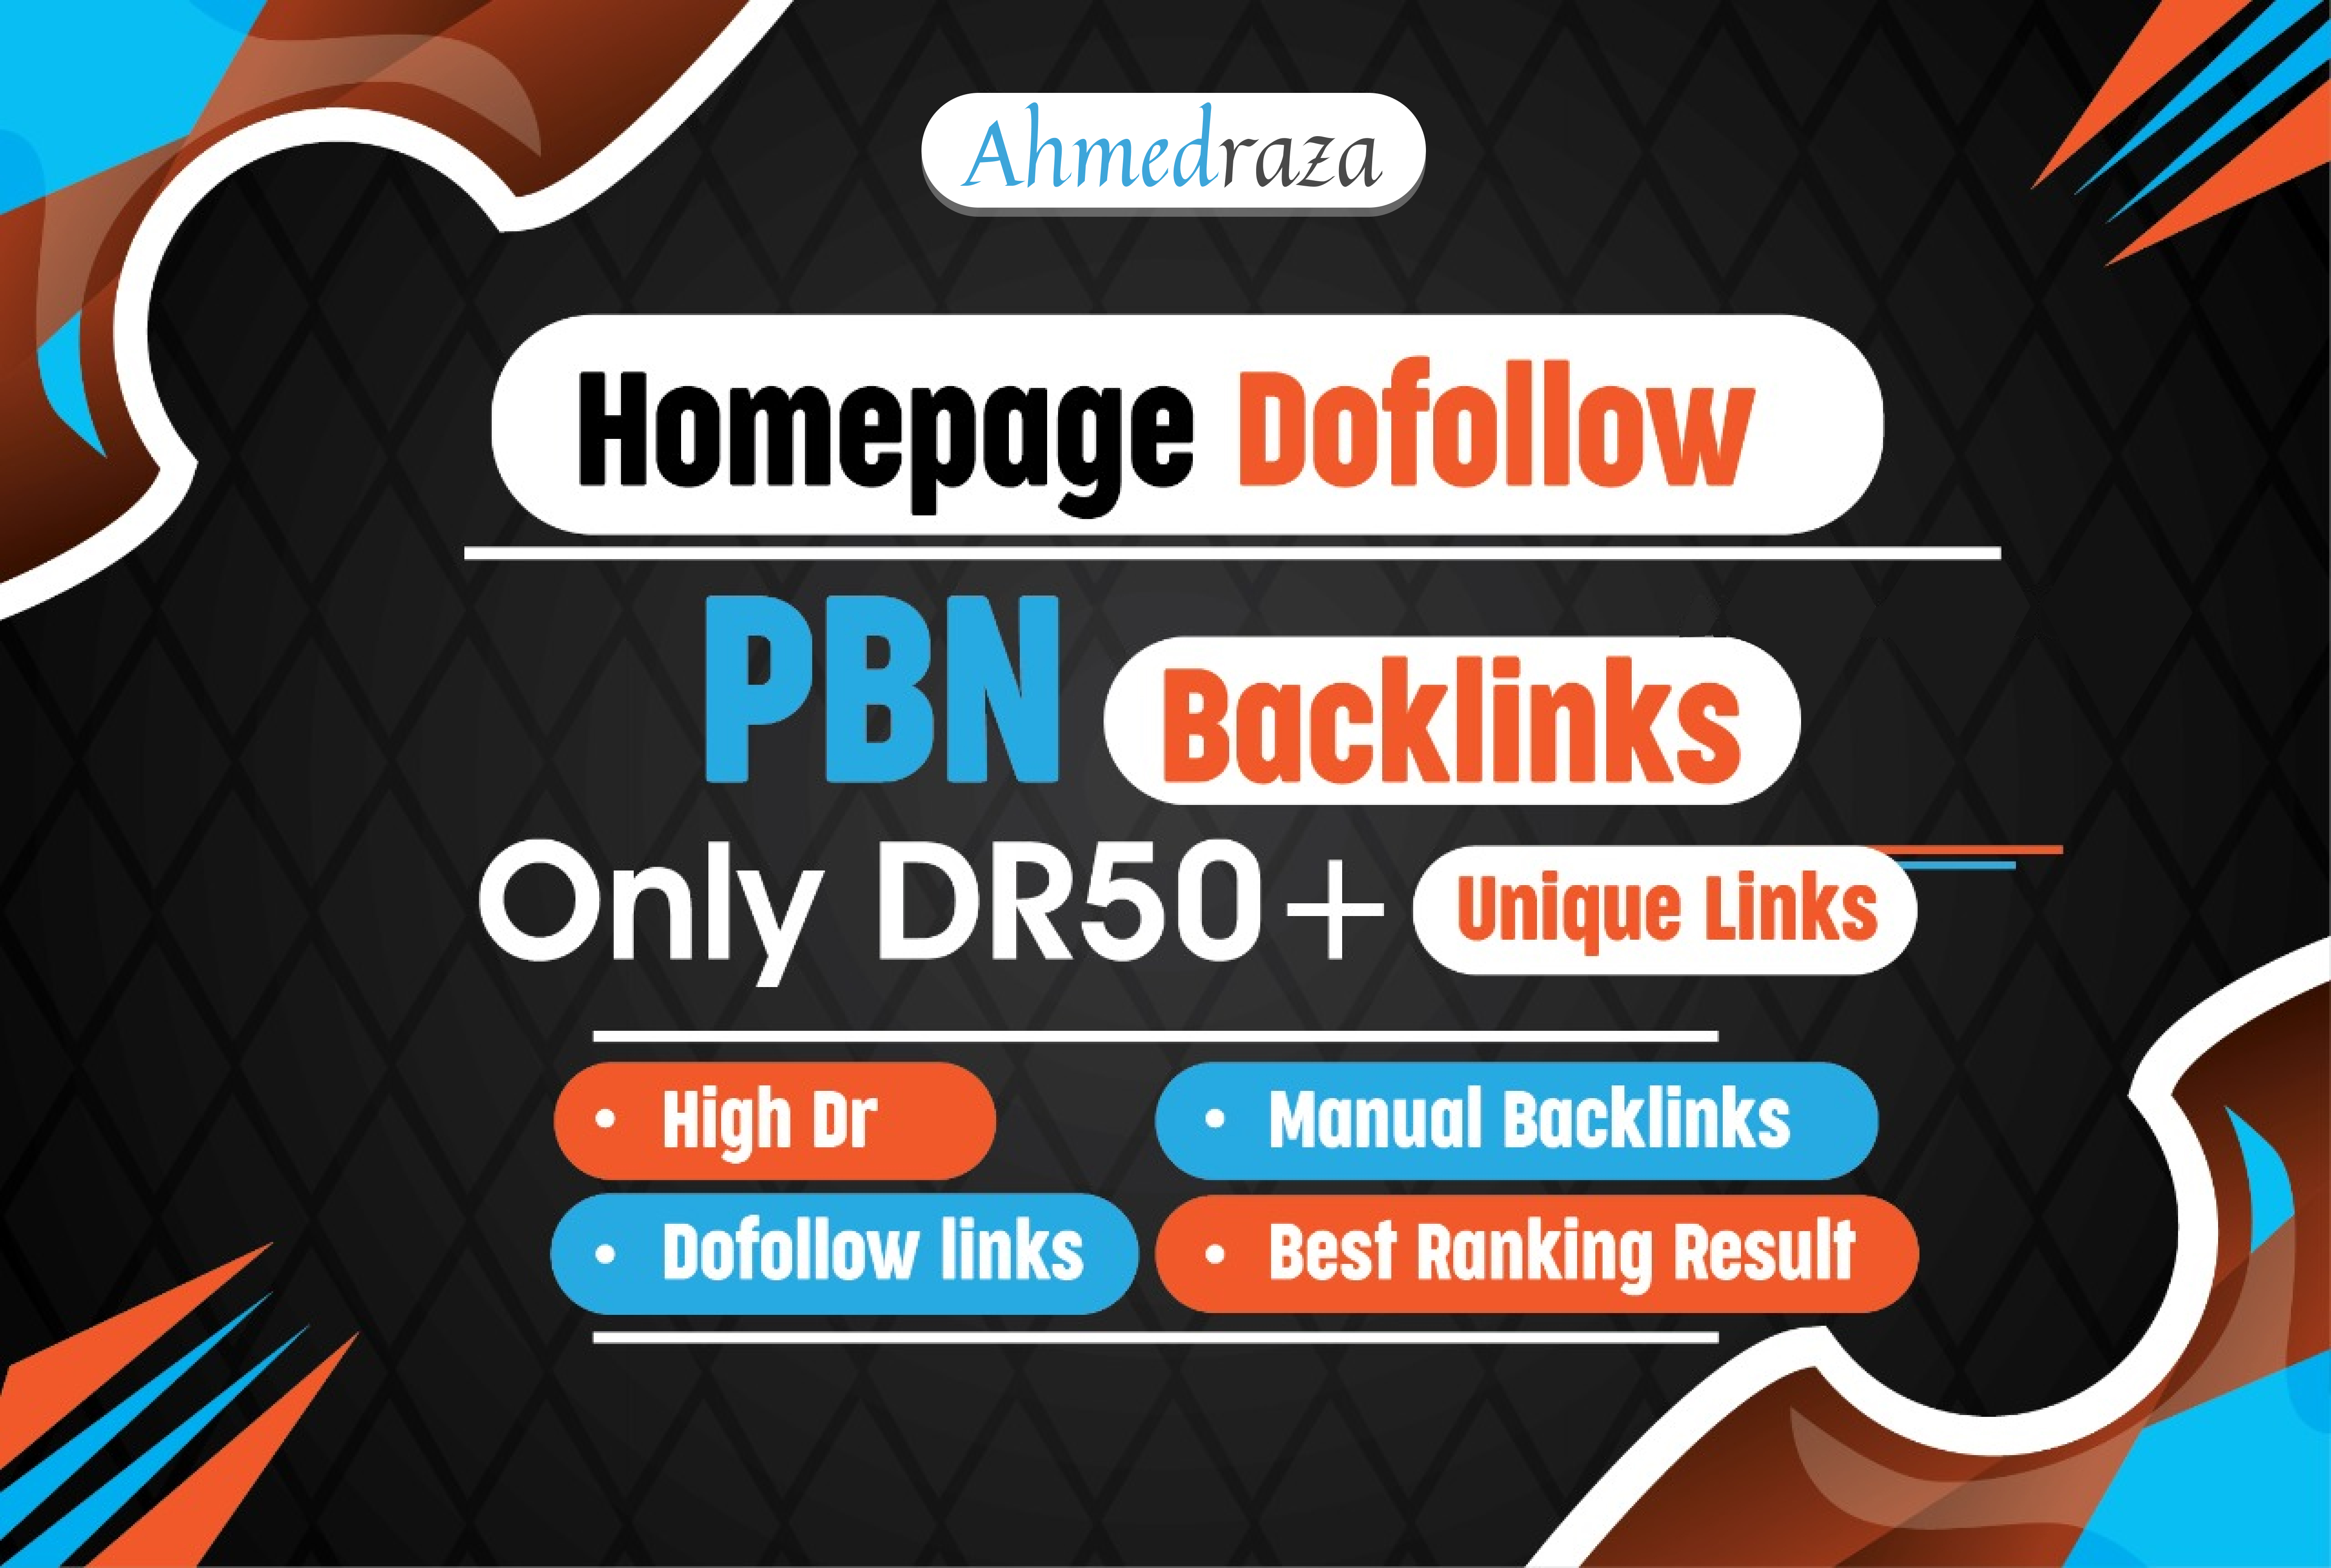 I will 15 PBN high DR 50 plus homepage doffolow backlinks